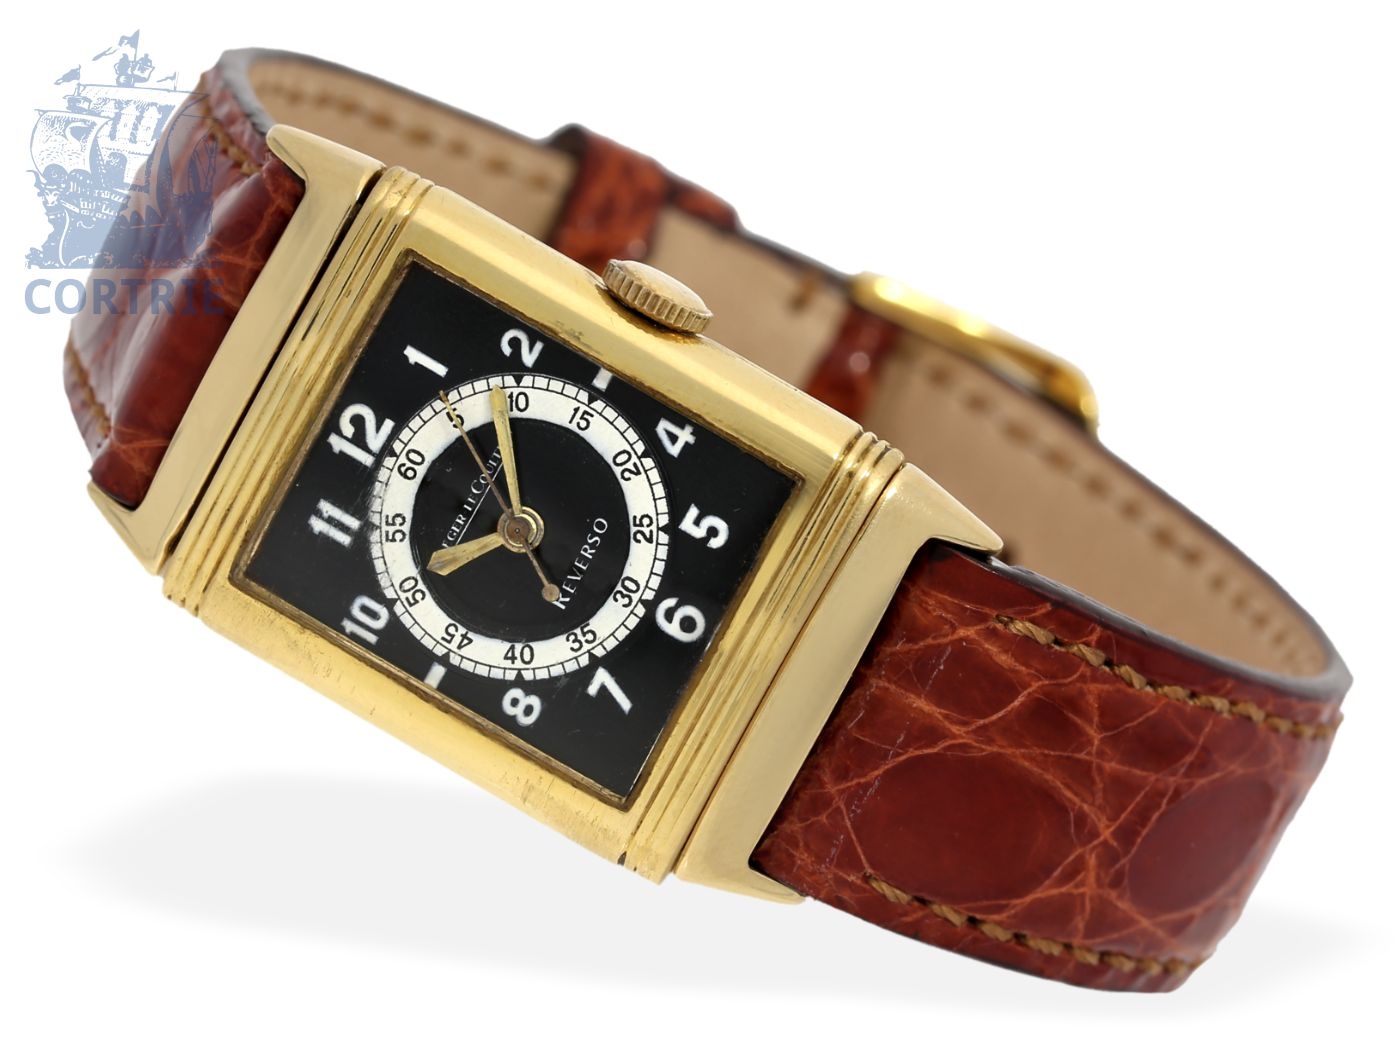 Wristwatch: Le Coultre rarity, very early Reverso Center Seconds, rare gold edition, probably 1940-